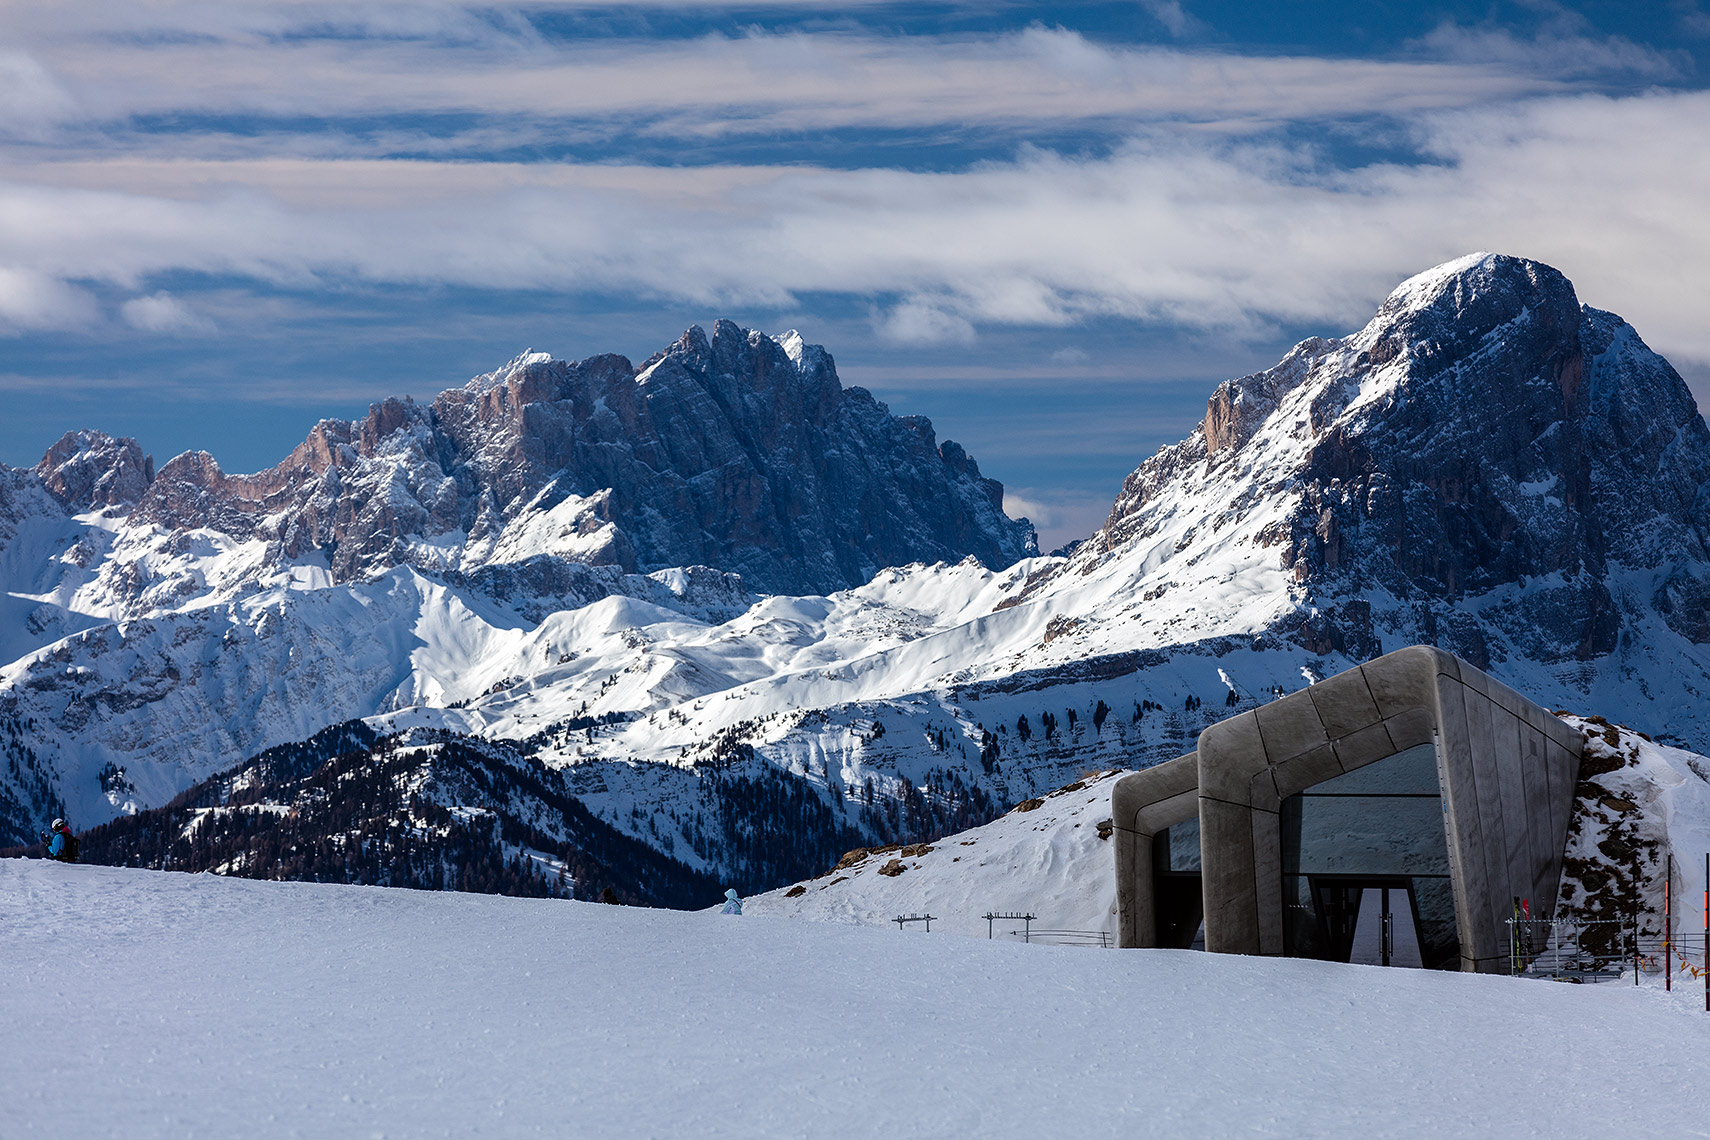 Messner museum and the peaks, Peter A. Sellar Architectural Photographer